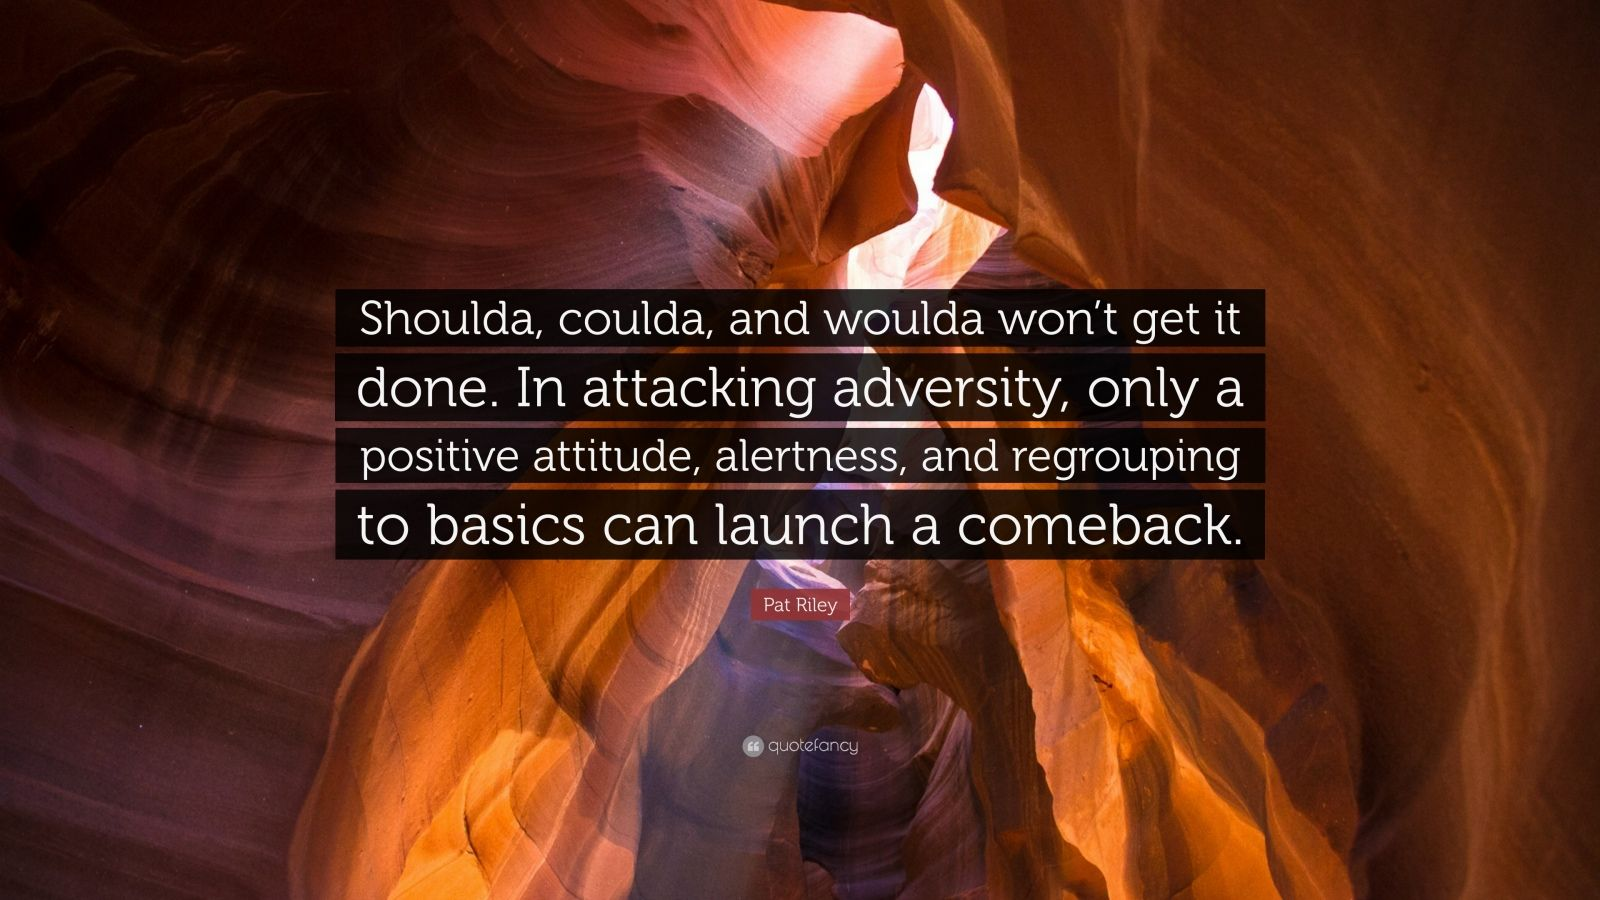 "Pat Riley Quote: ""Shoulda, coulda, and woulda won't get it done. In attacking adversity, only a positive attitude, alertness, and regrouping to basics can launch a comeback."""